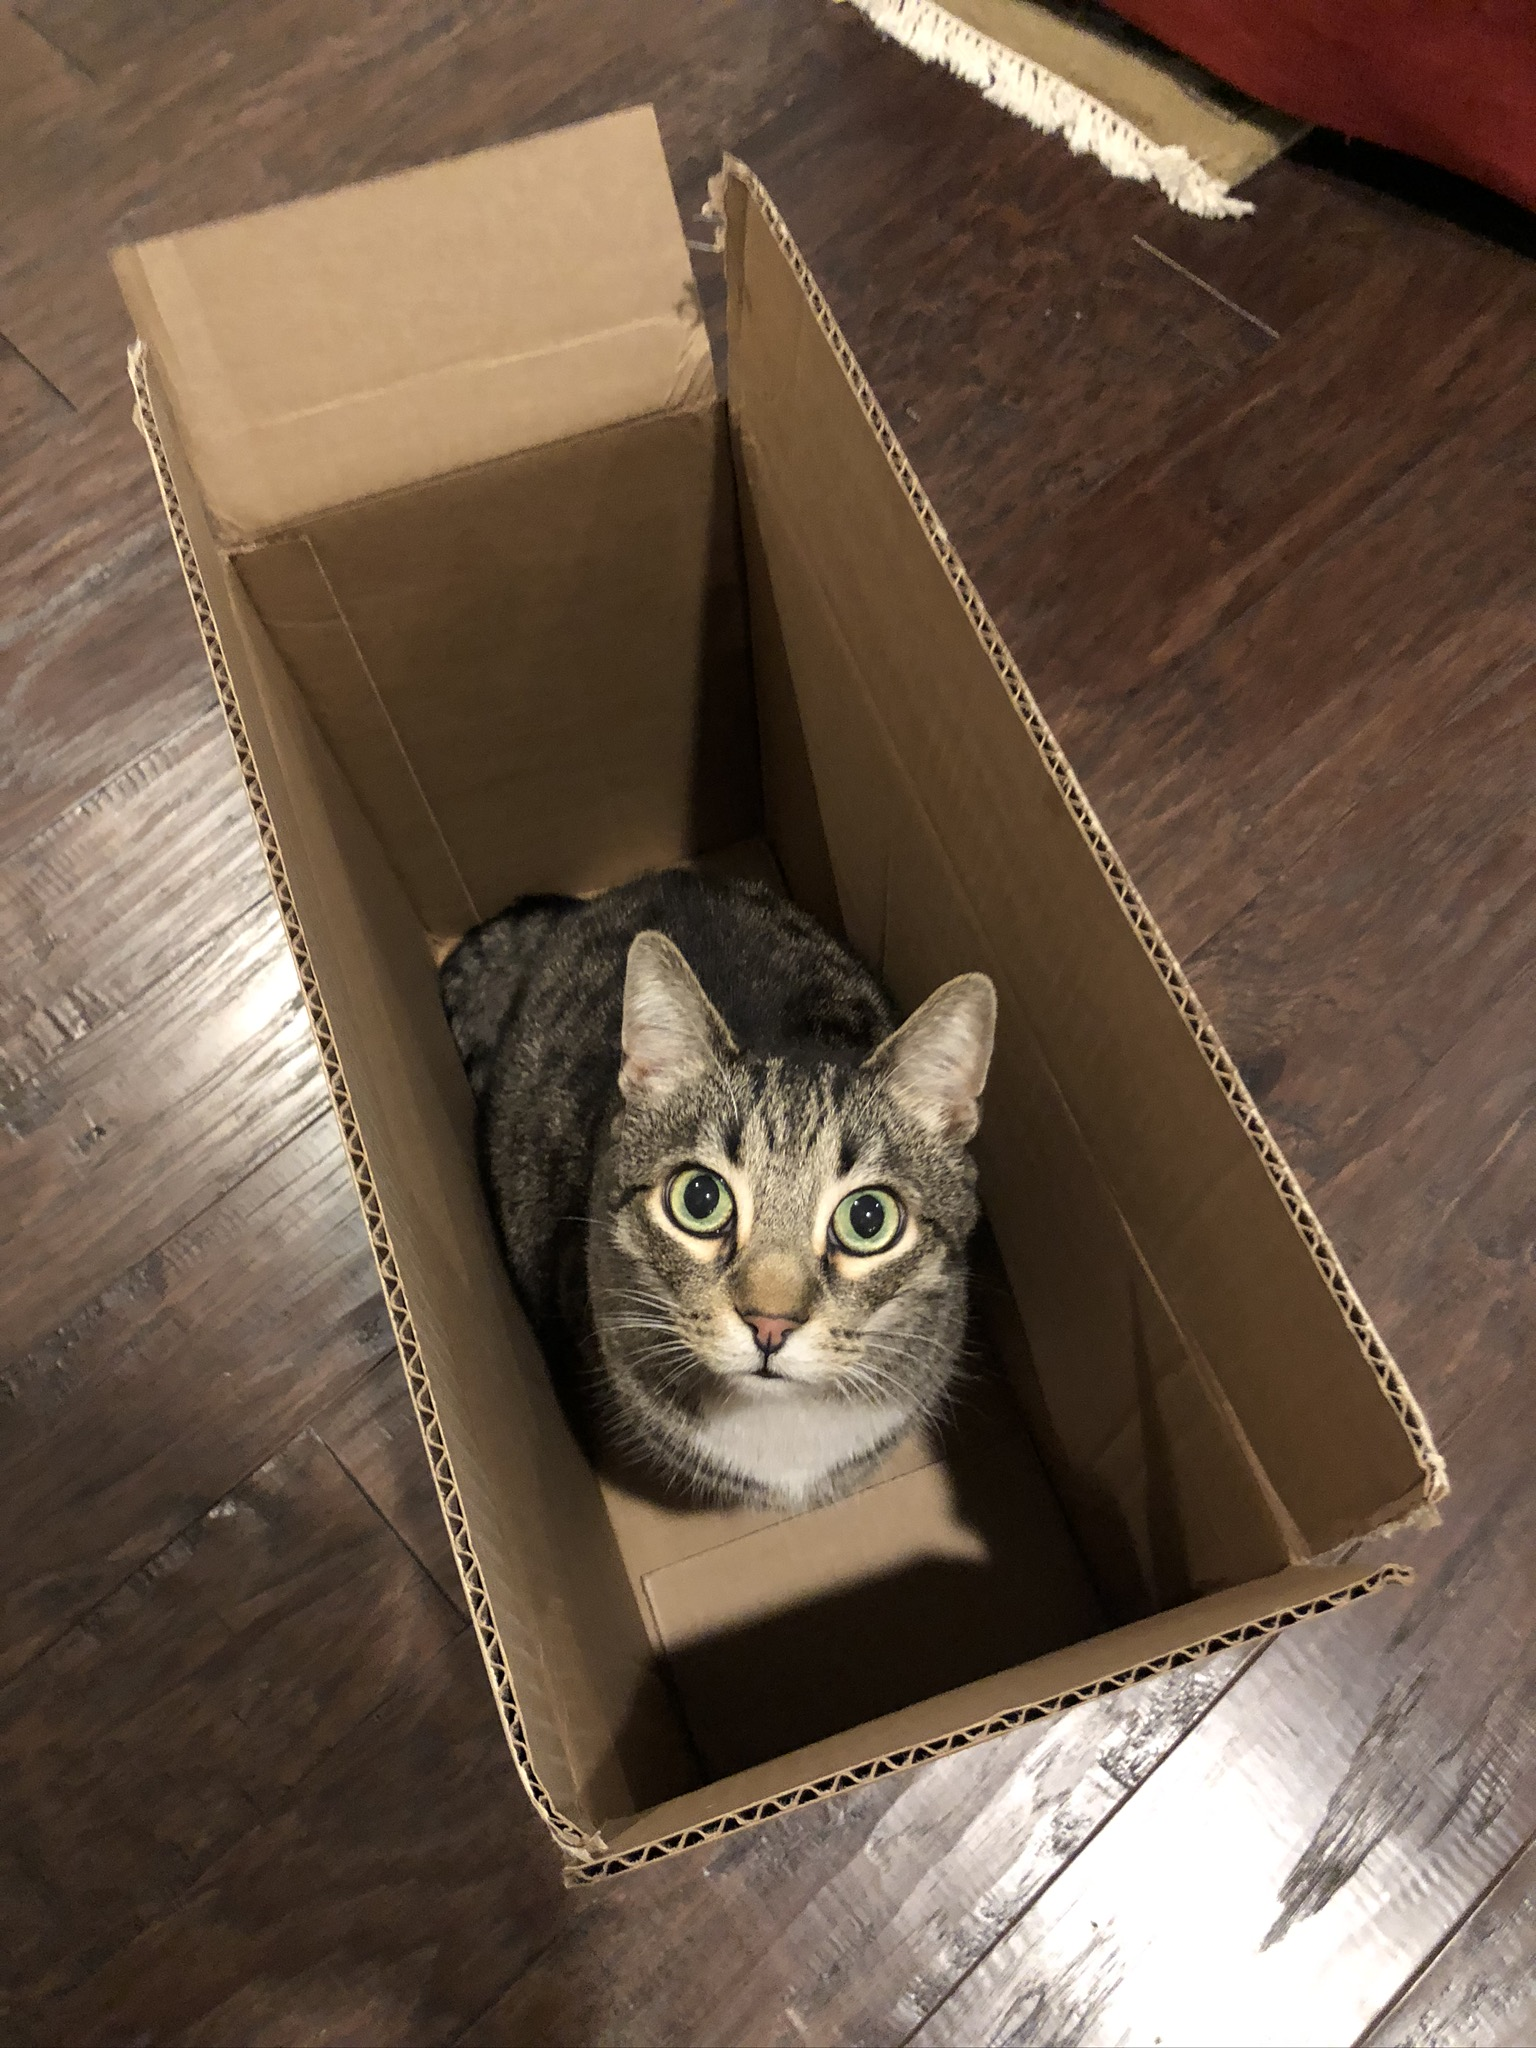 Haku in a box